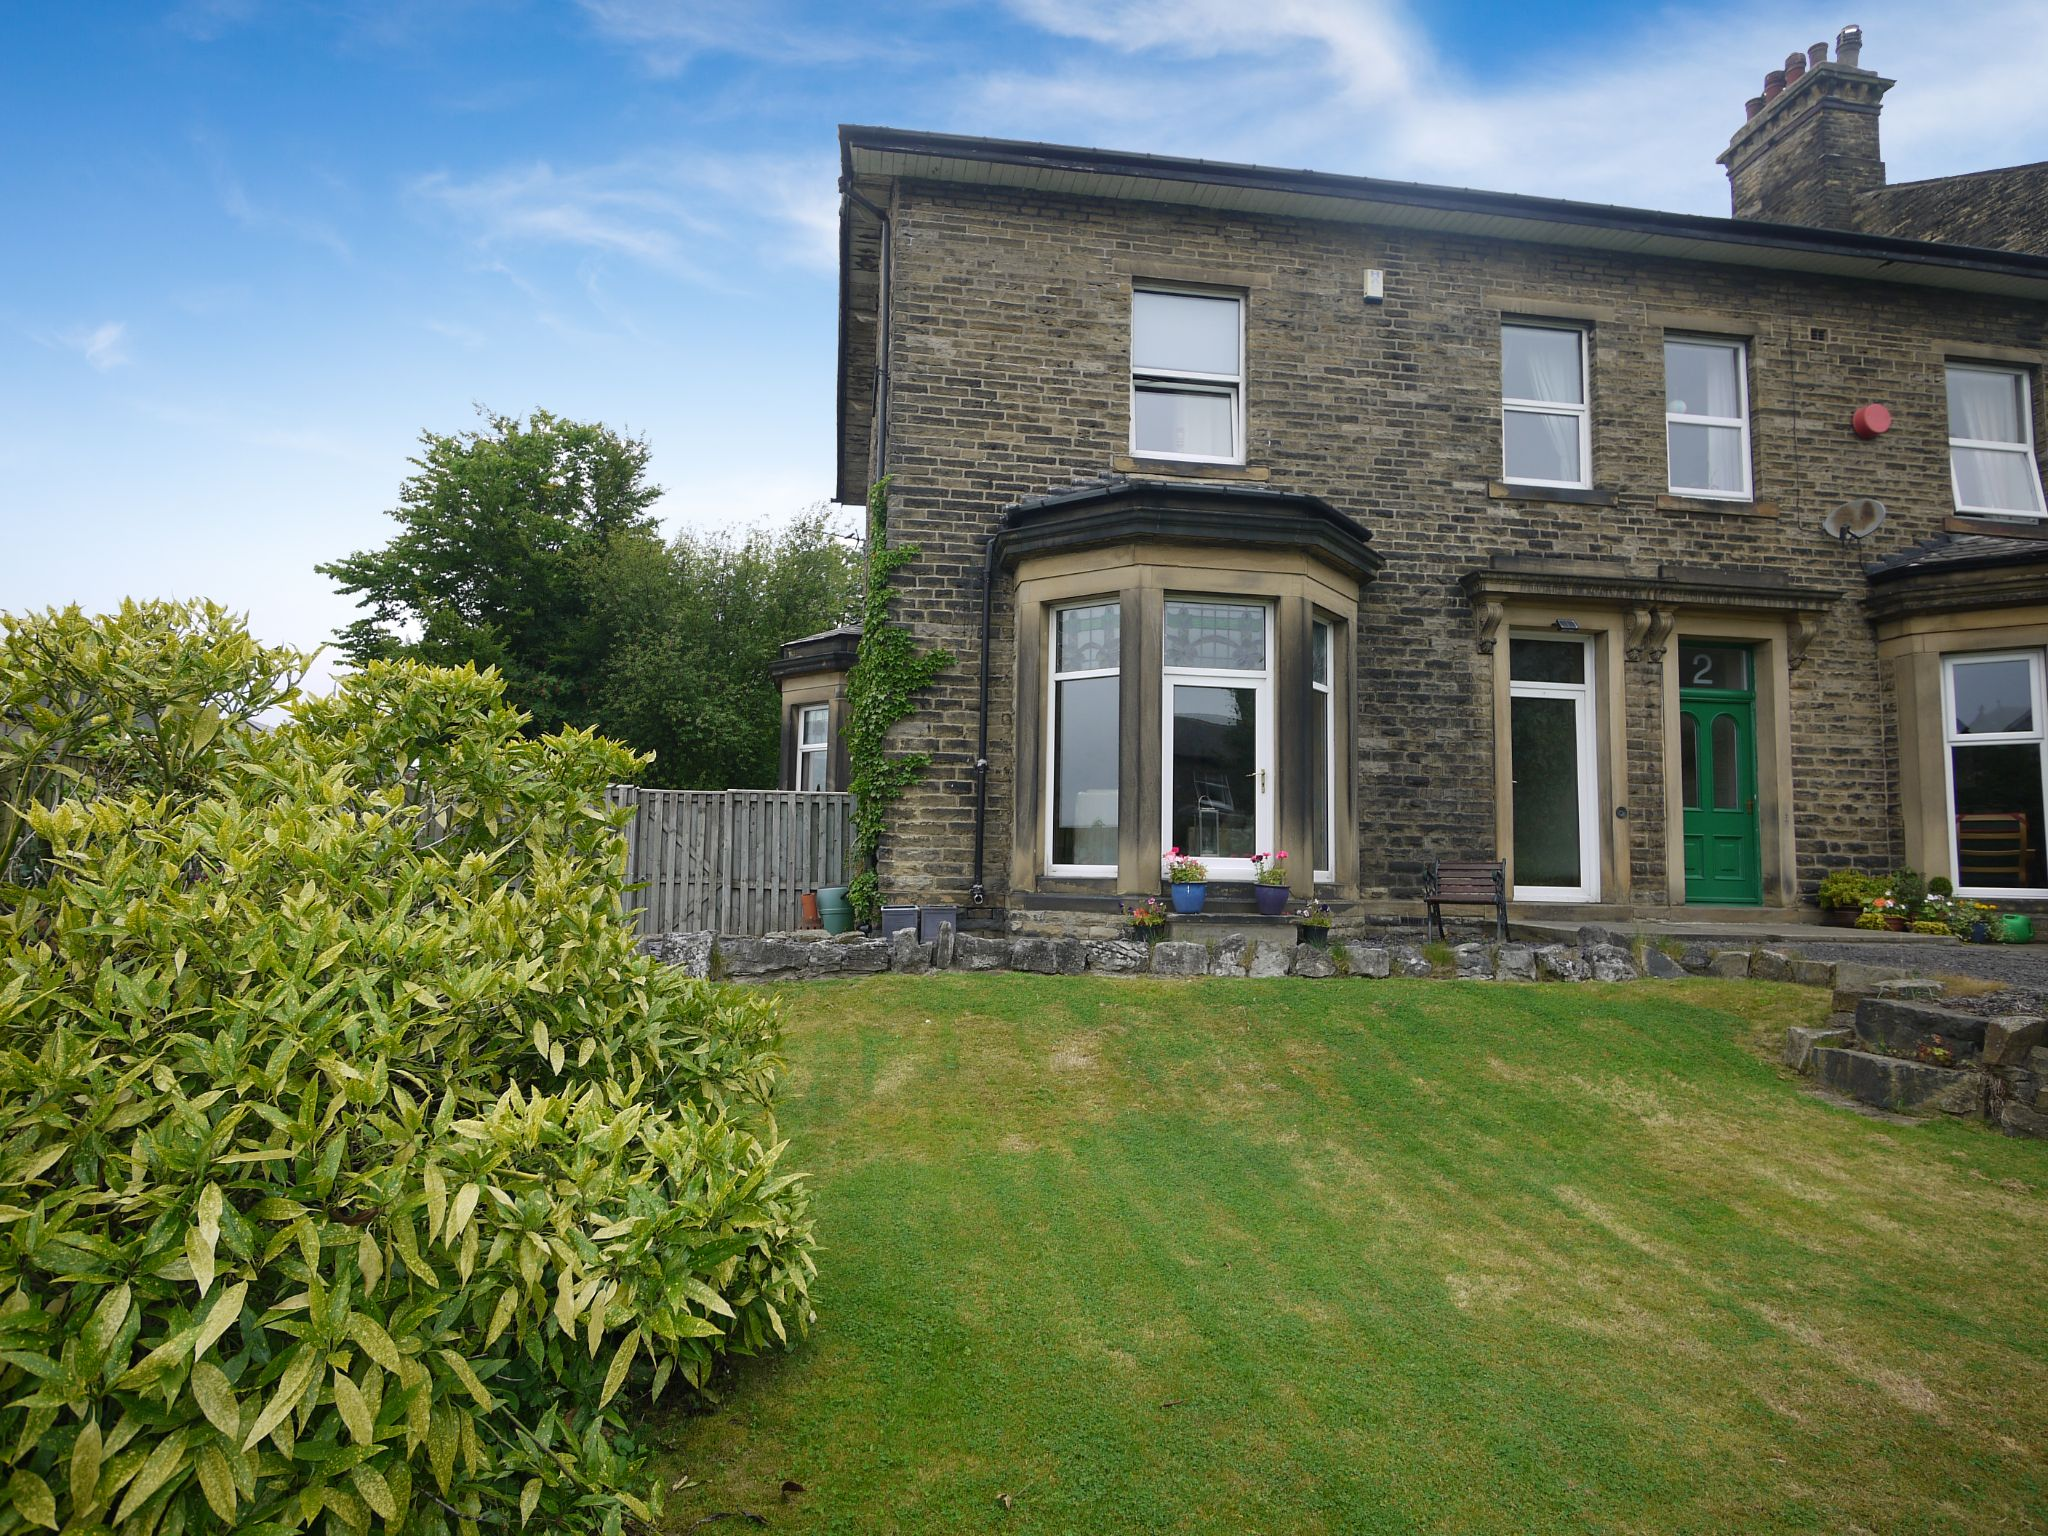 5 bedroom end terraced house SSTC in Halifax - Main.